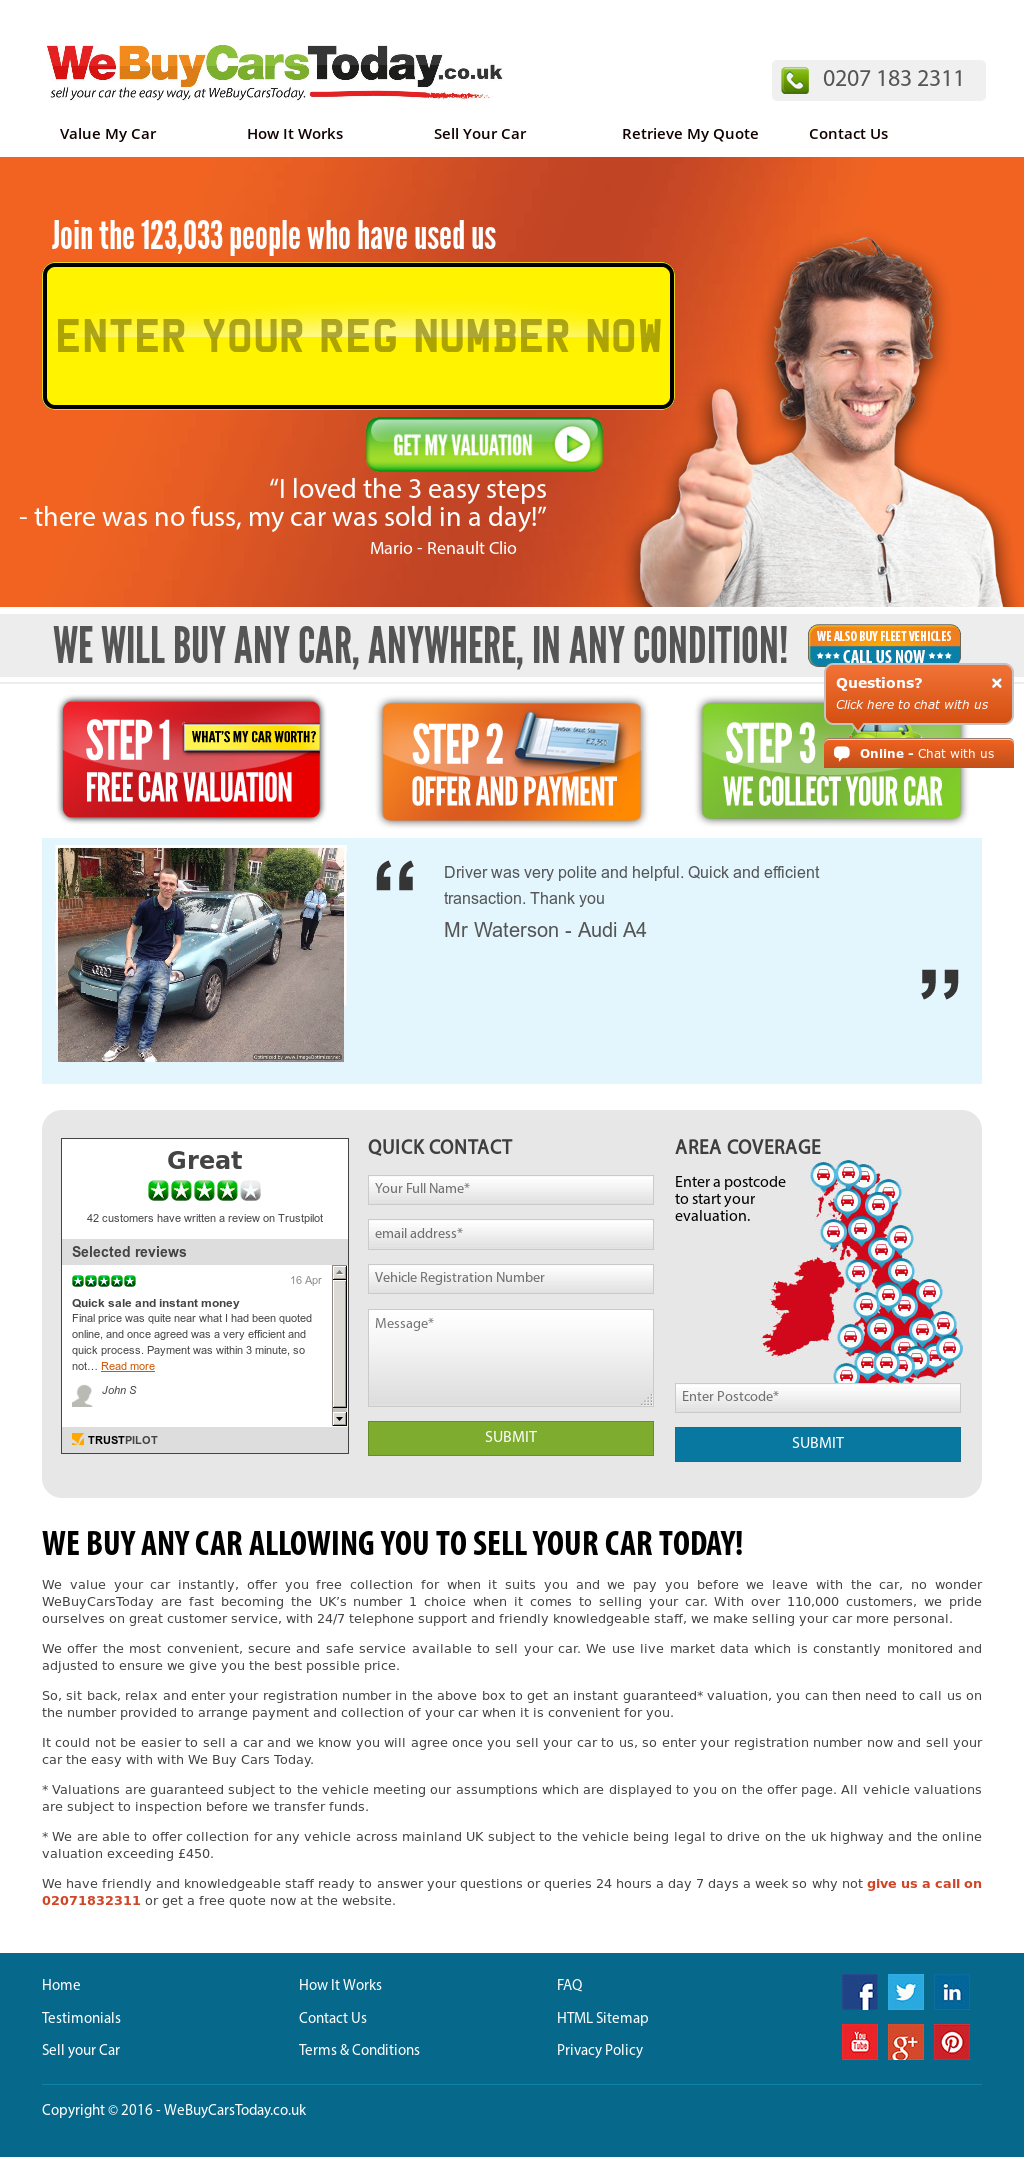 We Buy Cars Today Competitors, Revenue and Employees - Owler Company ...